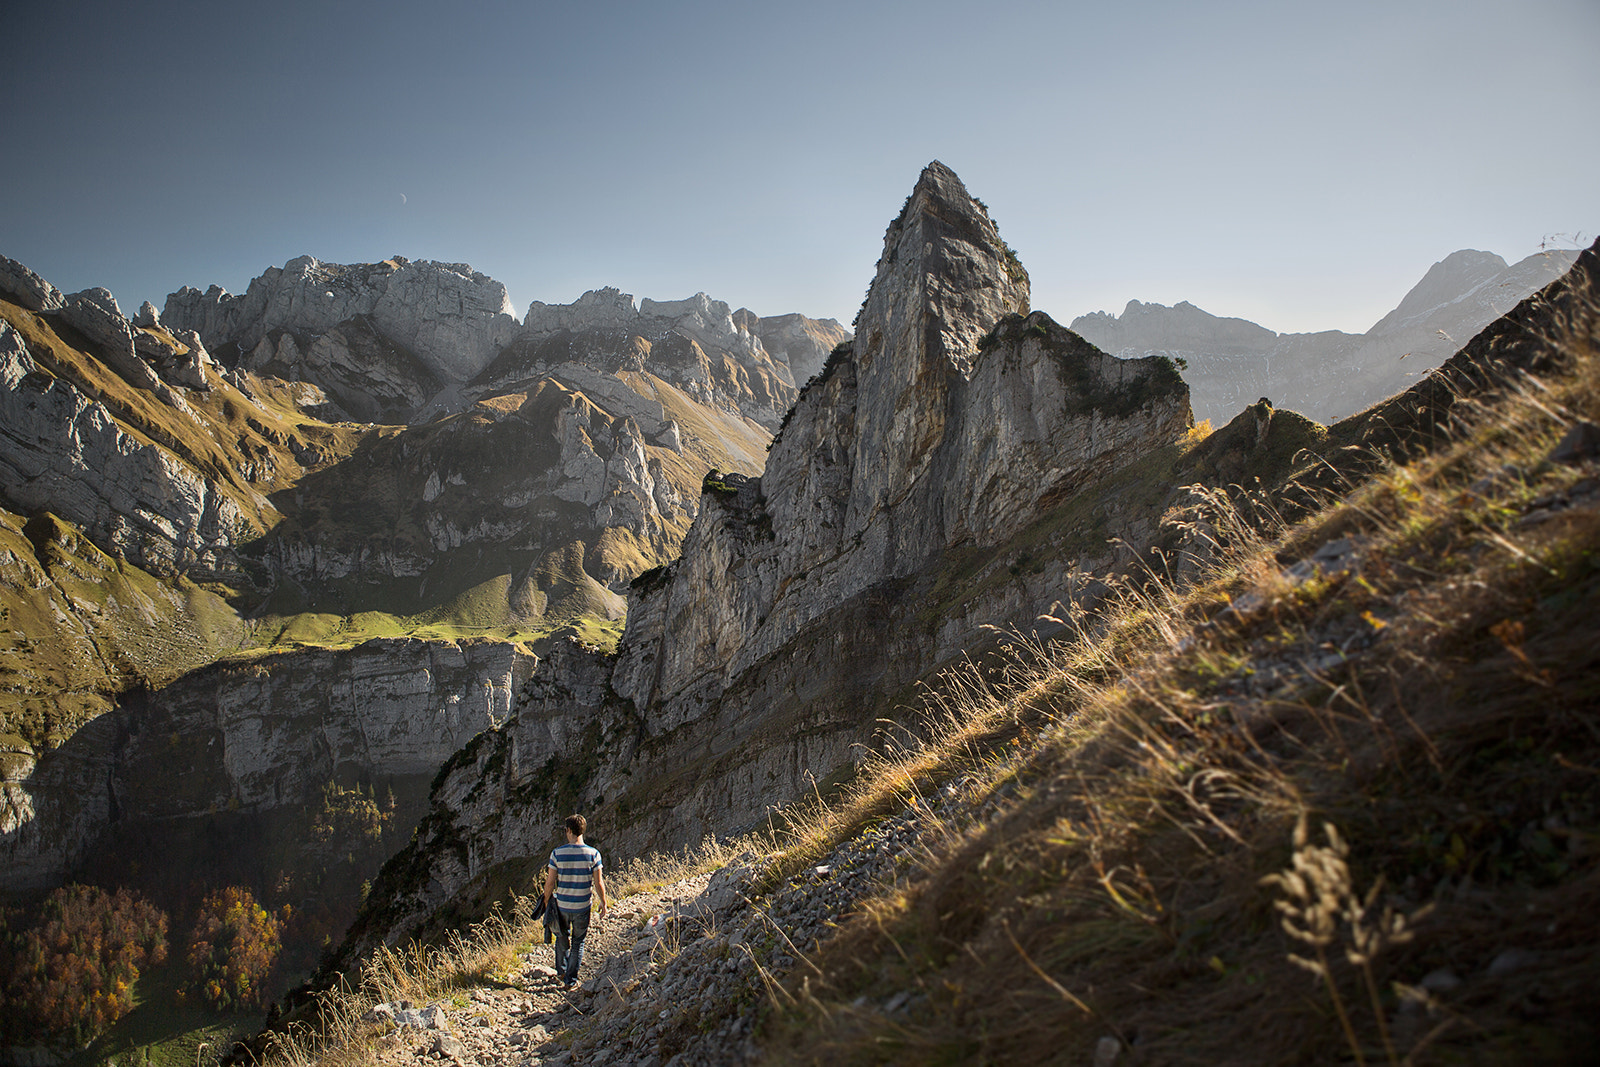 Photograph The casual climber by Andy G. on 500px